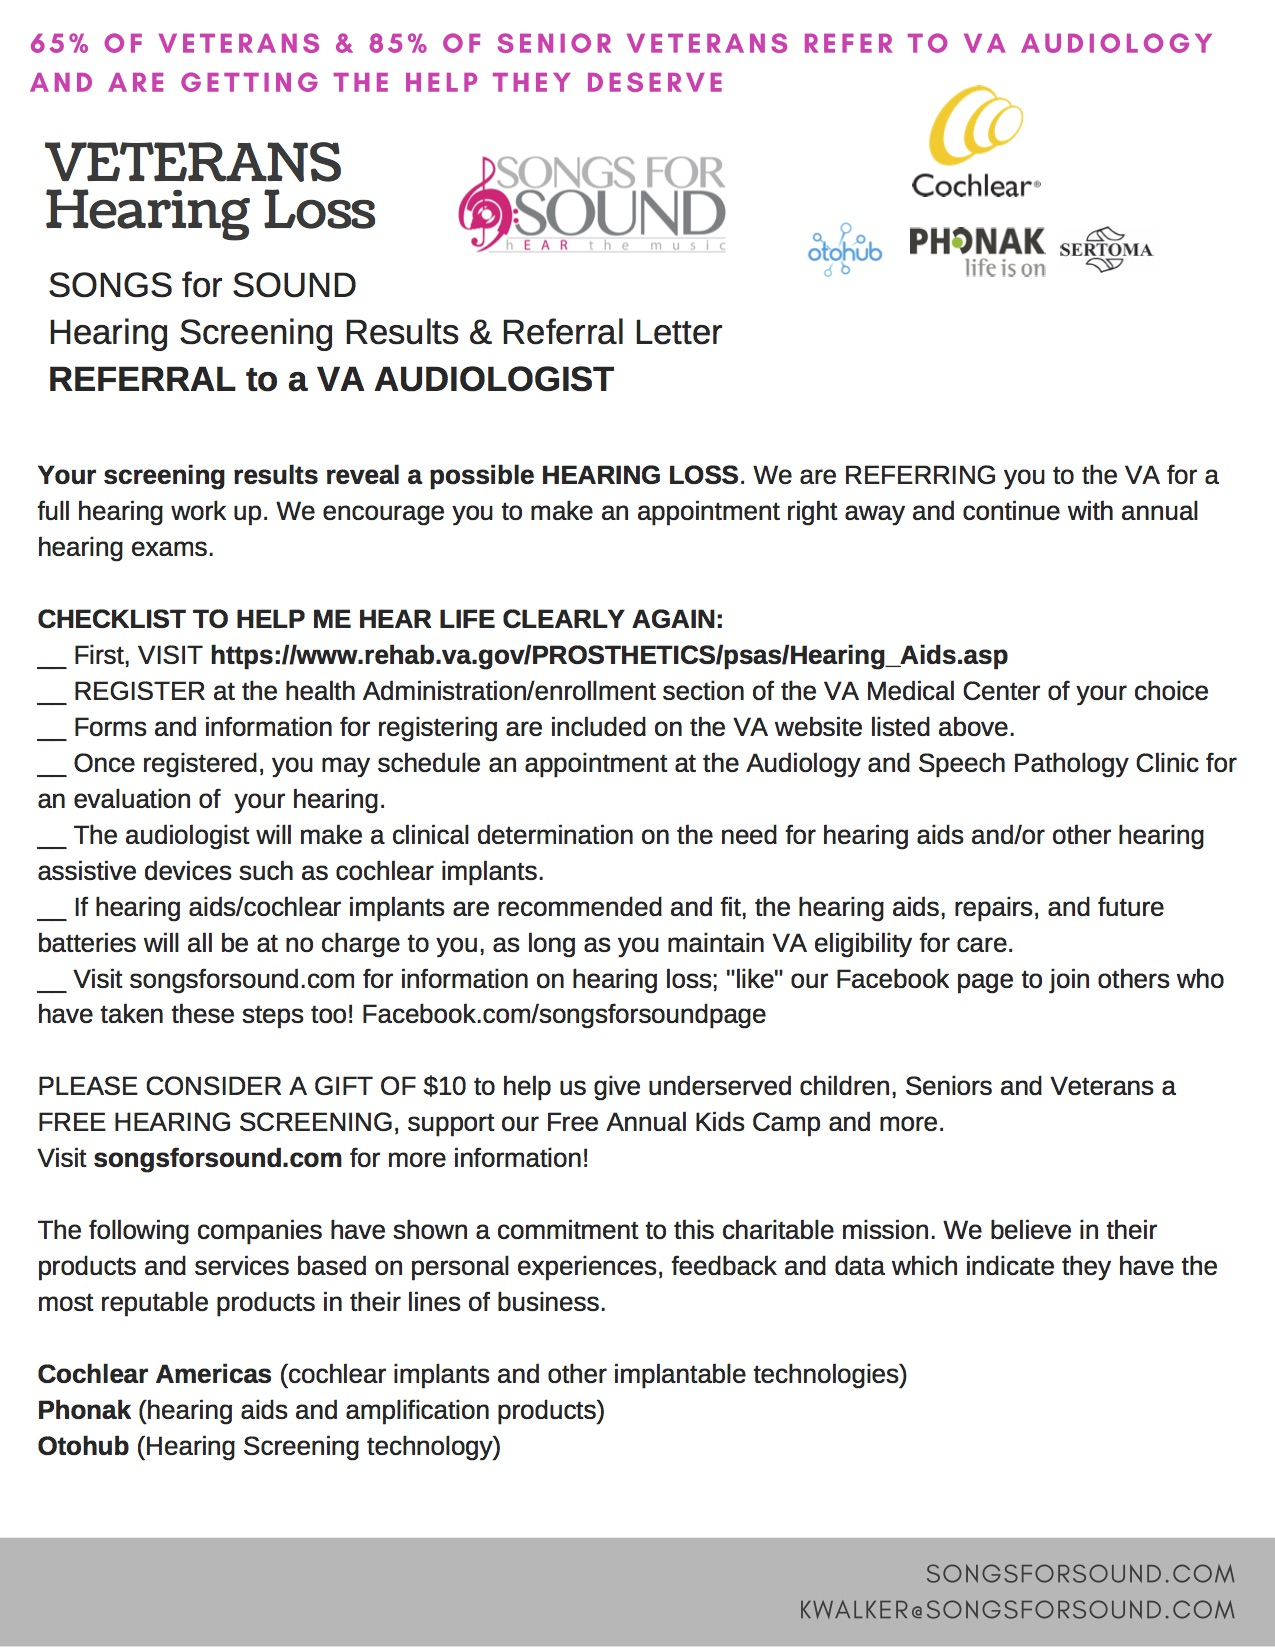 Veterans Hearing Loss Checklist